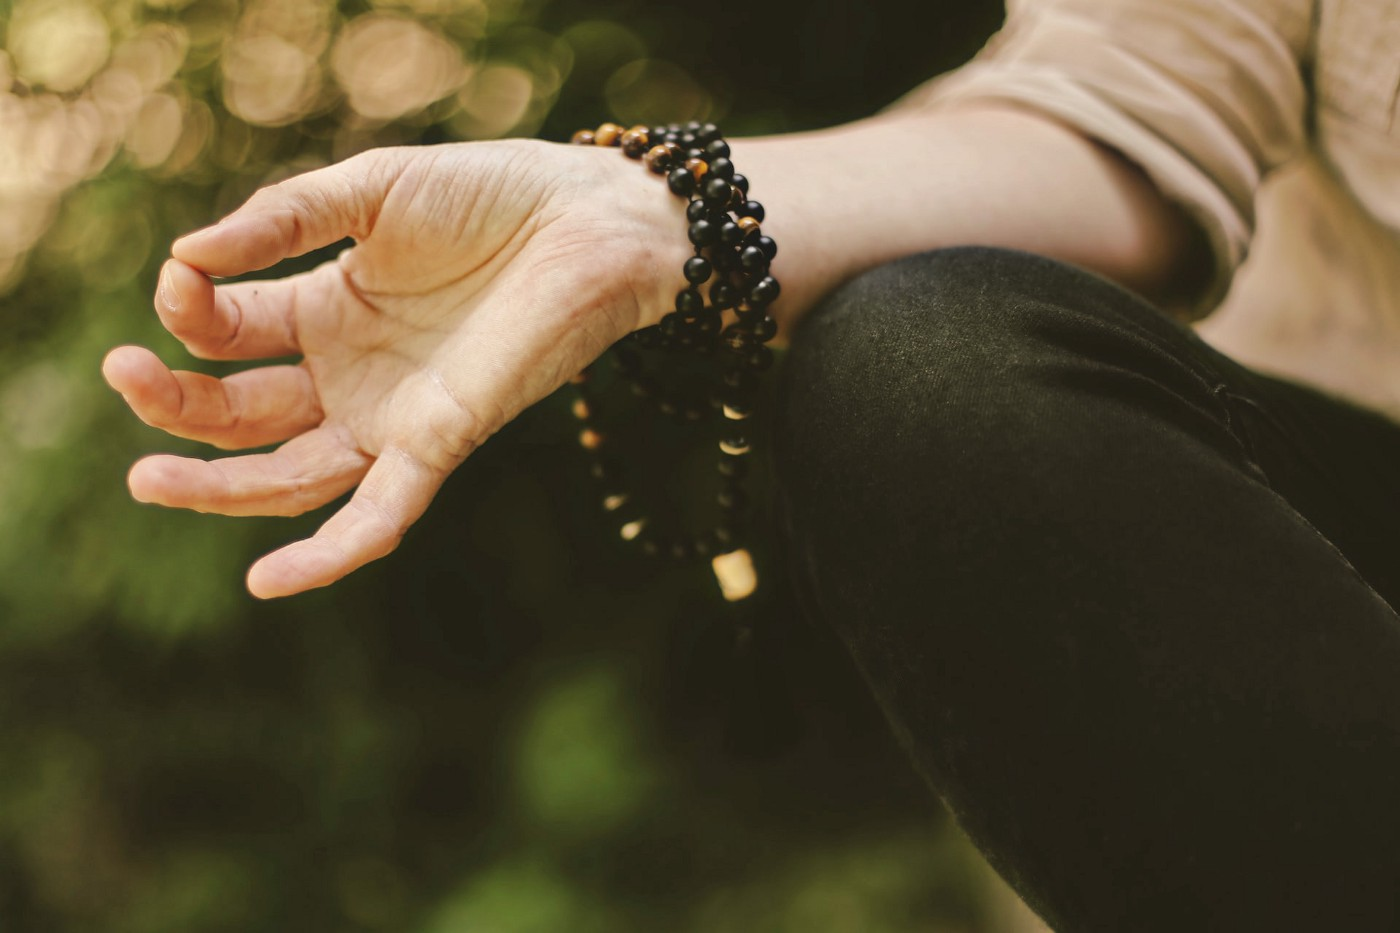 A person sitting in a meditative pose, with prayer beads strung around their wrist.